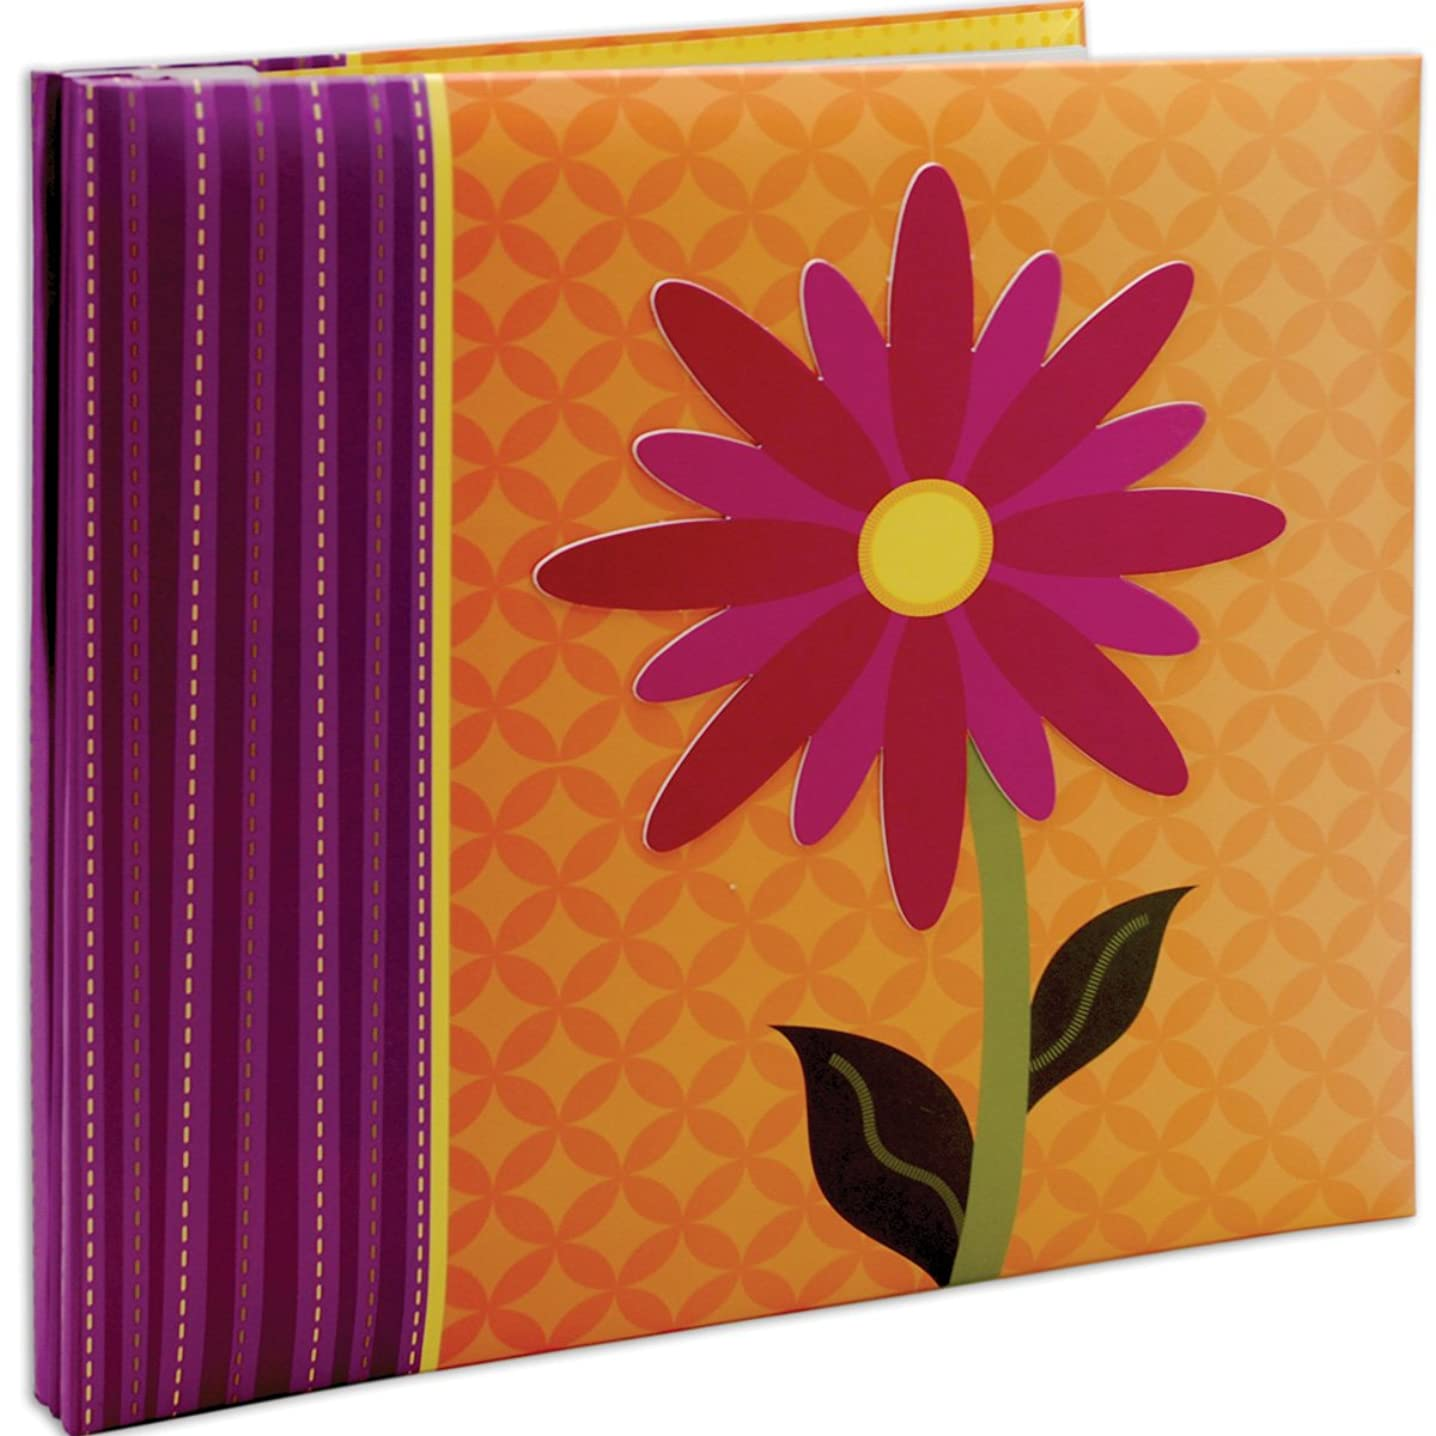 MCS MBI 13.5x12.5 Inch 3-D Character Scrapbook Album with 12x12 Inch Pages, Flower (848135)